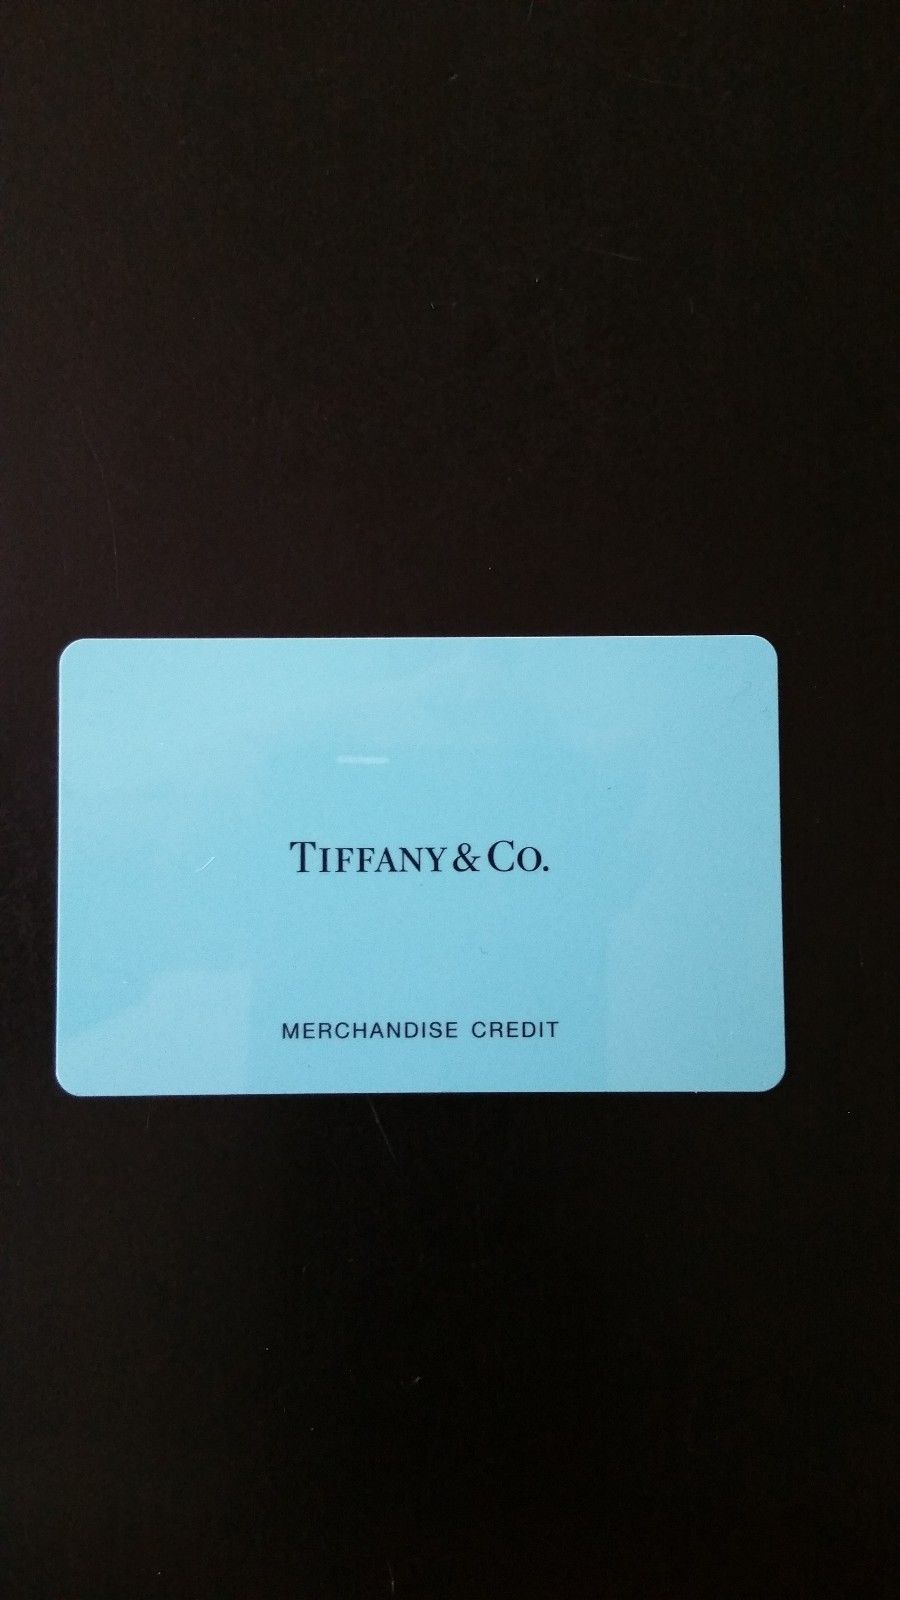 Coupons Giftcards Tiffany Co 269 38 Merchandise Credit Gift Card Coupons Giftcards Cards Gift Card Gift Coupons